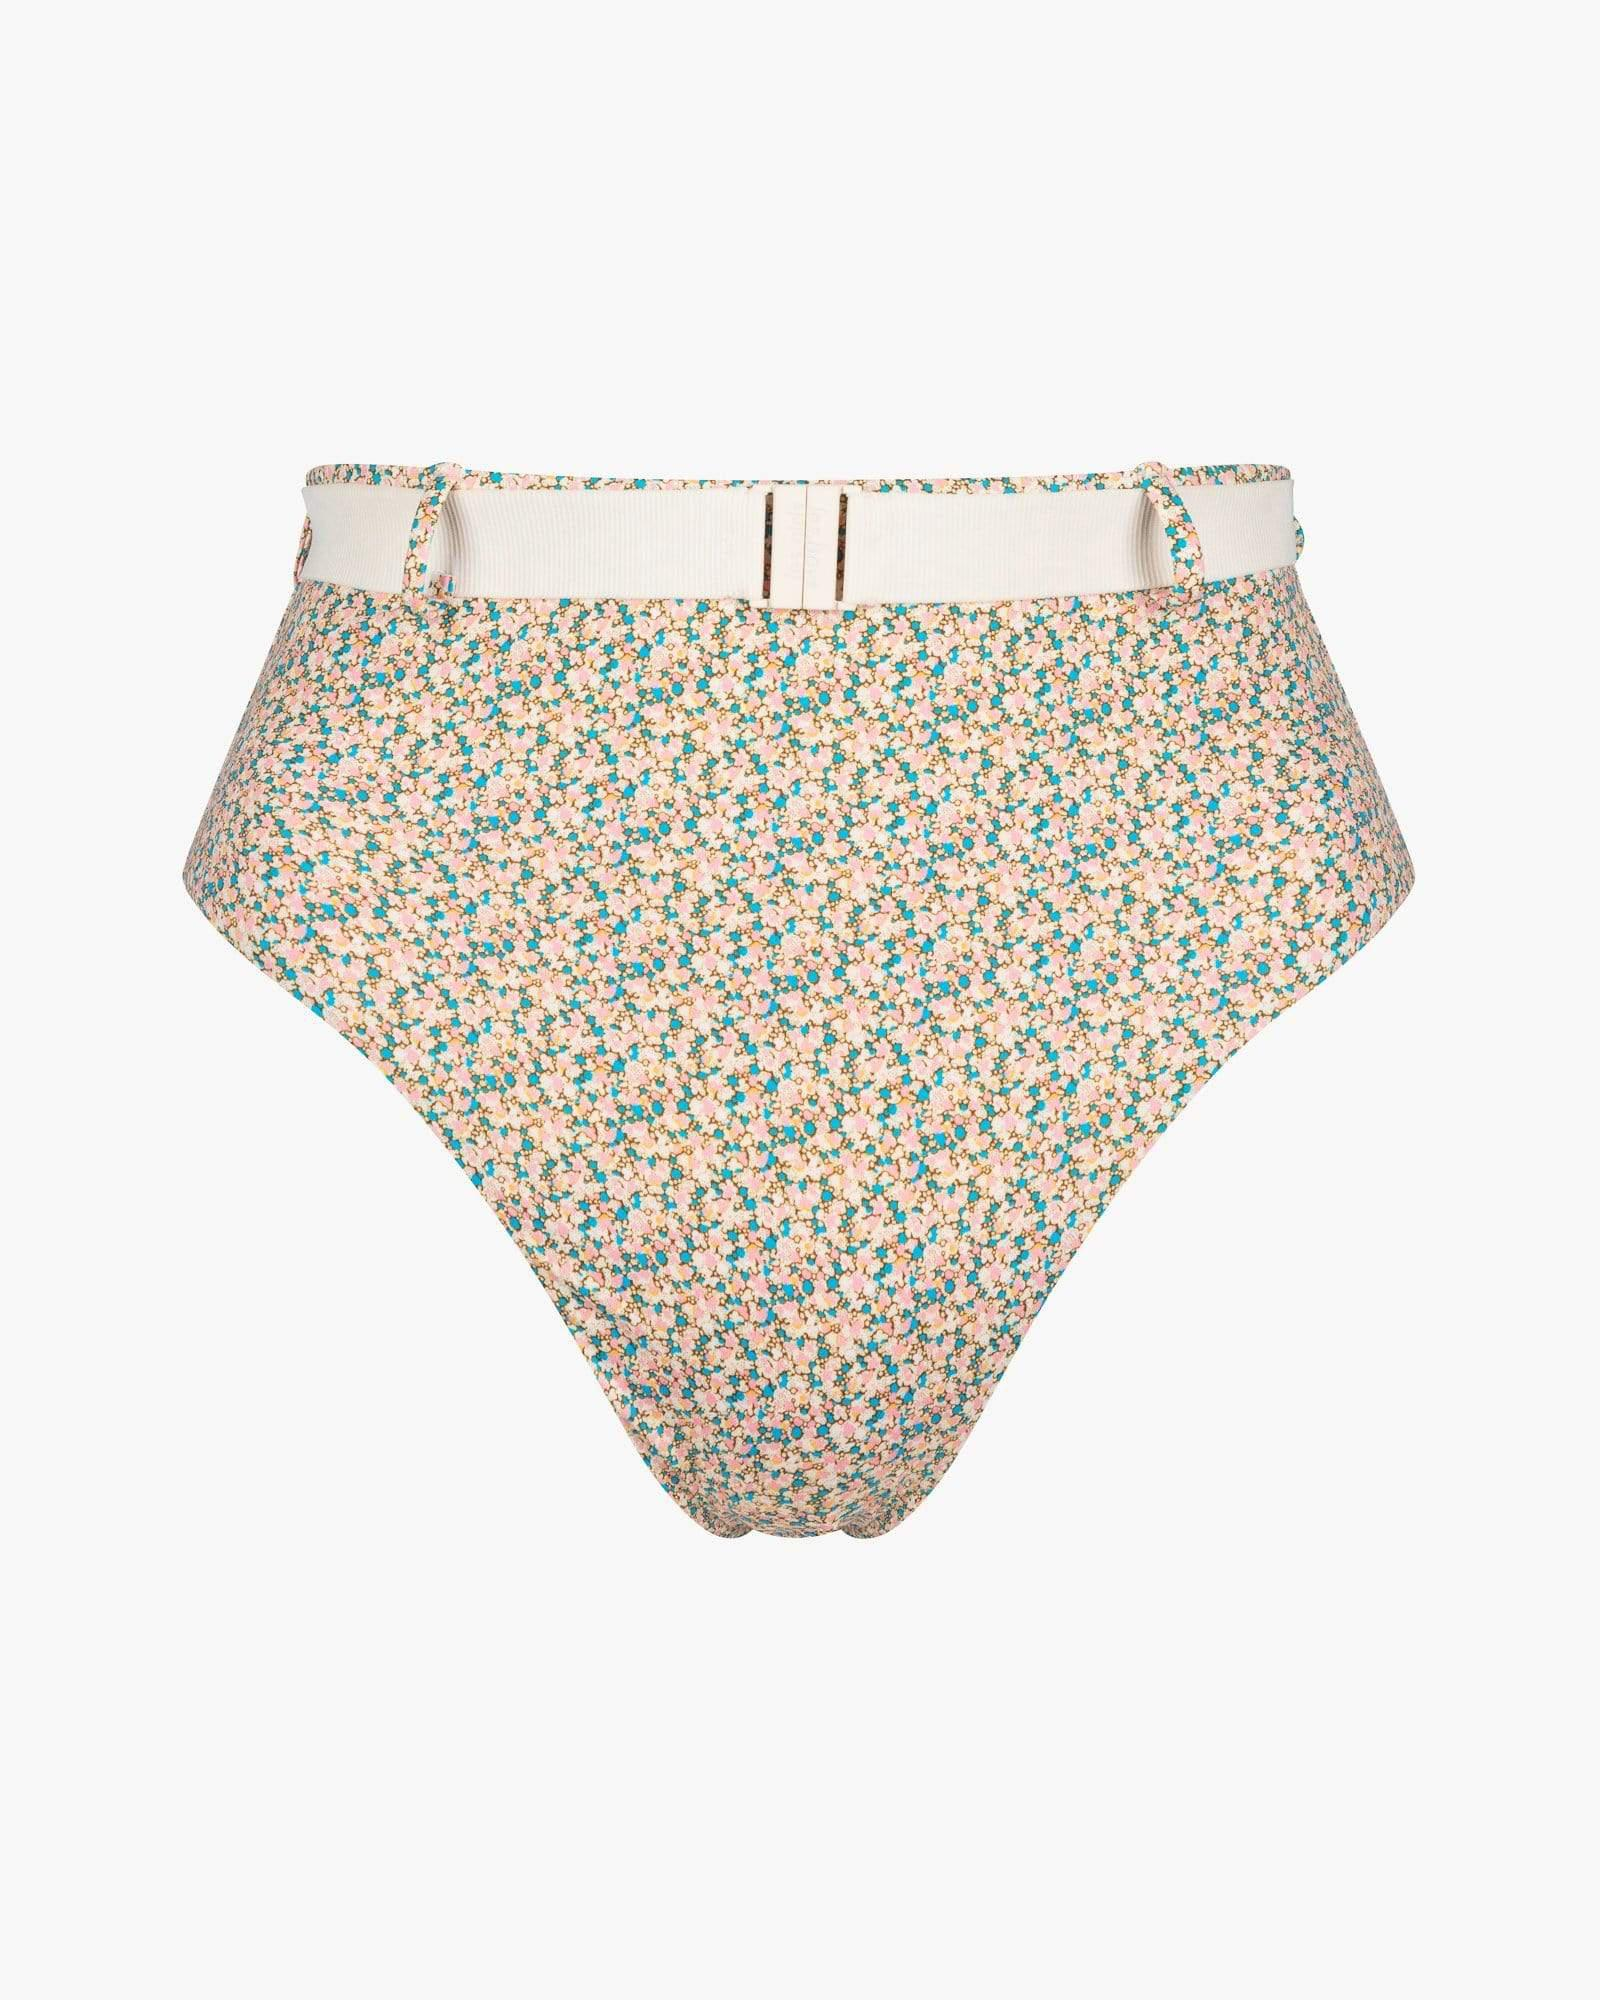 Belted high waist bikini bottoms made with dizzy floral Liberty Fabric 2